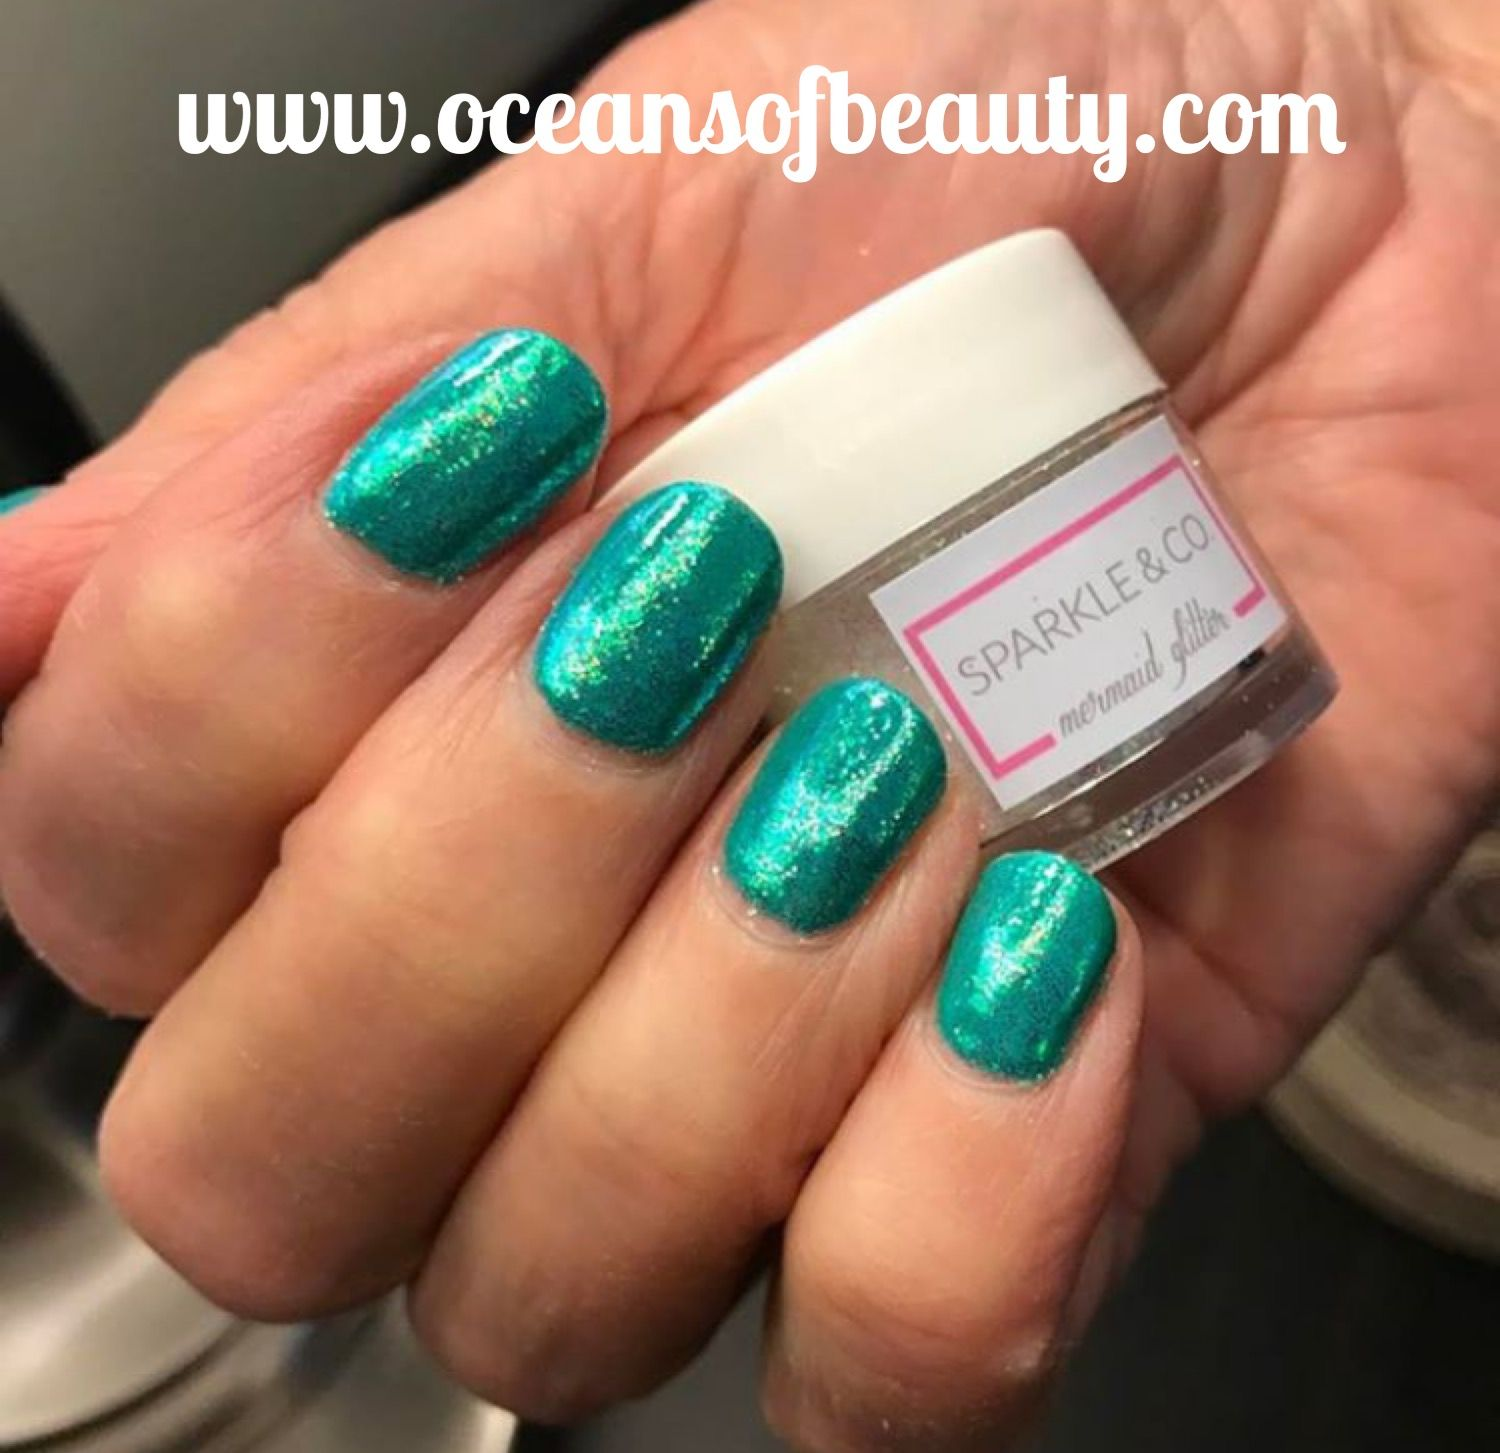 Mermaid Glitter Visit www.oceansofbeauty.com for EZ Dip Gel Powder ...